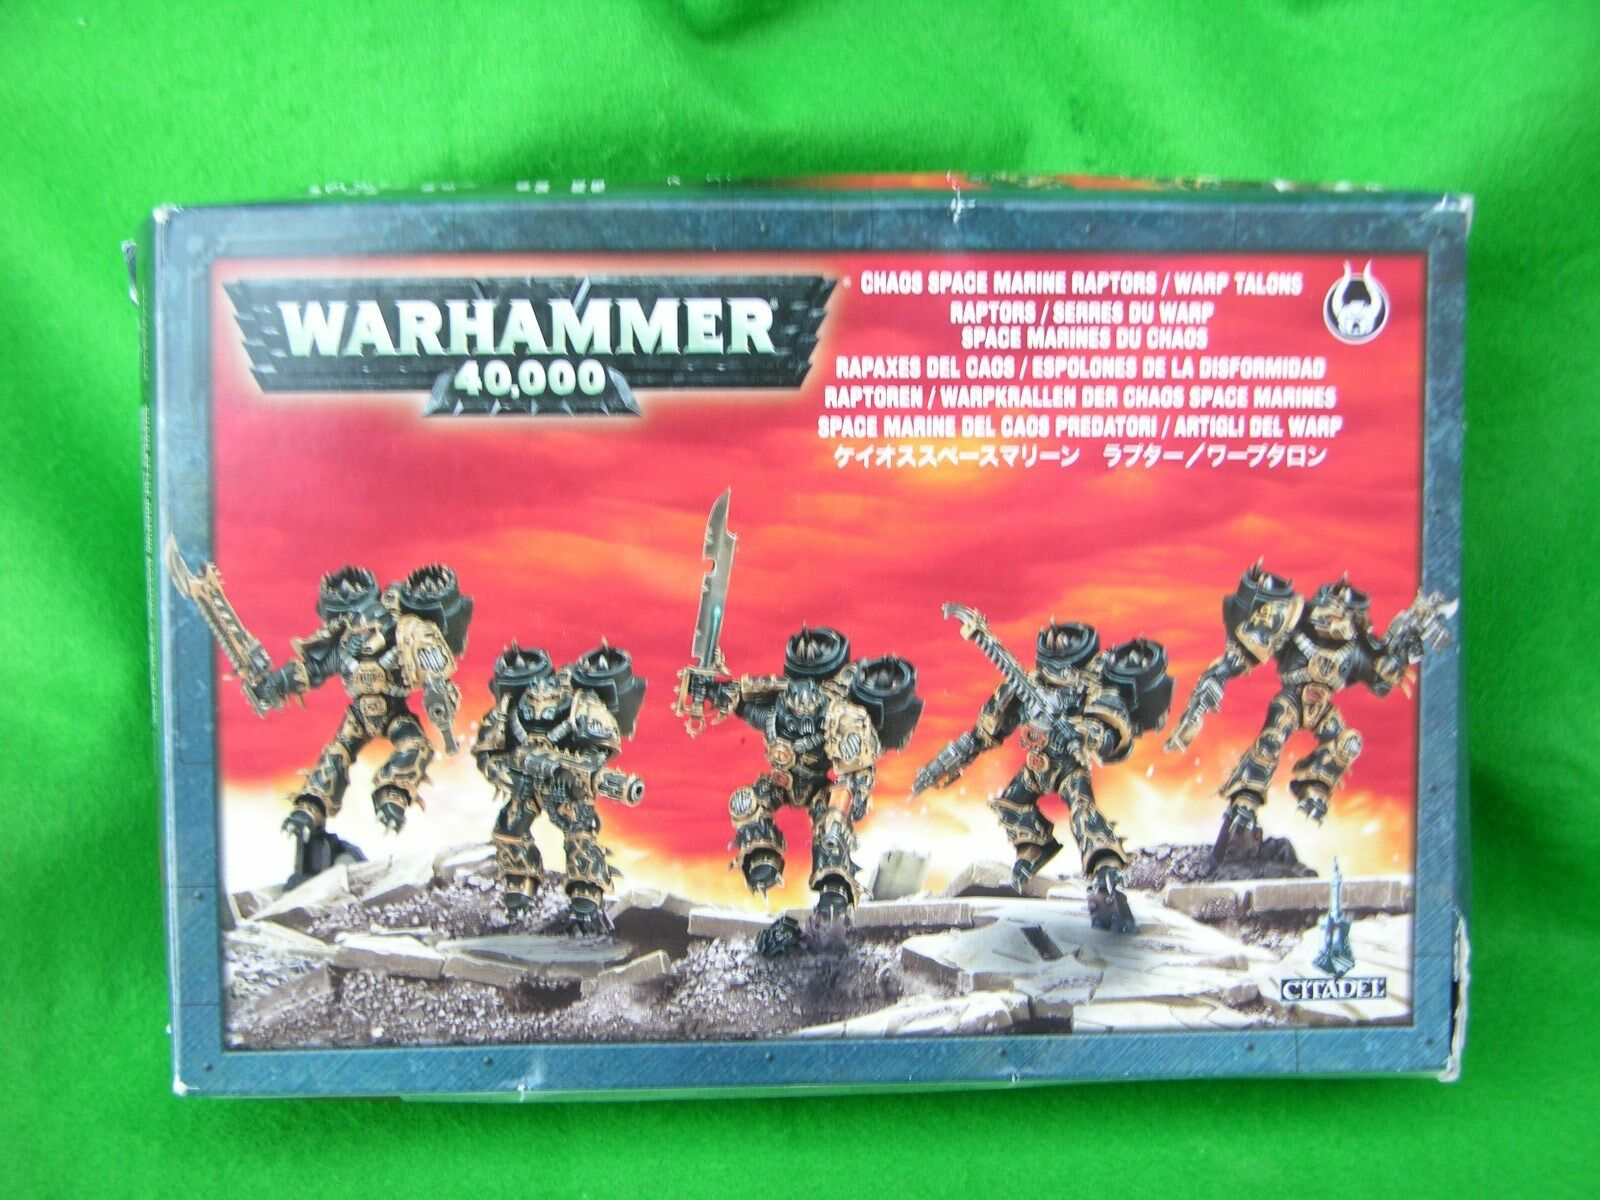 WH40K CHAOS SPACE SPACE SPACE MARINE BOX SETS, MULTI-LISTING 0e34ec